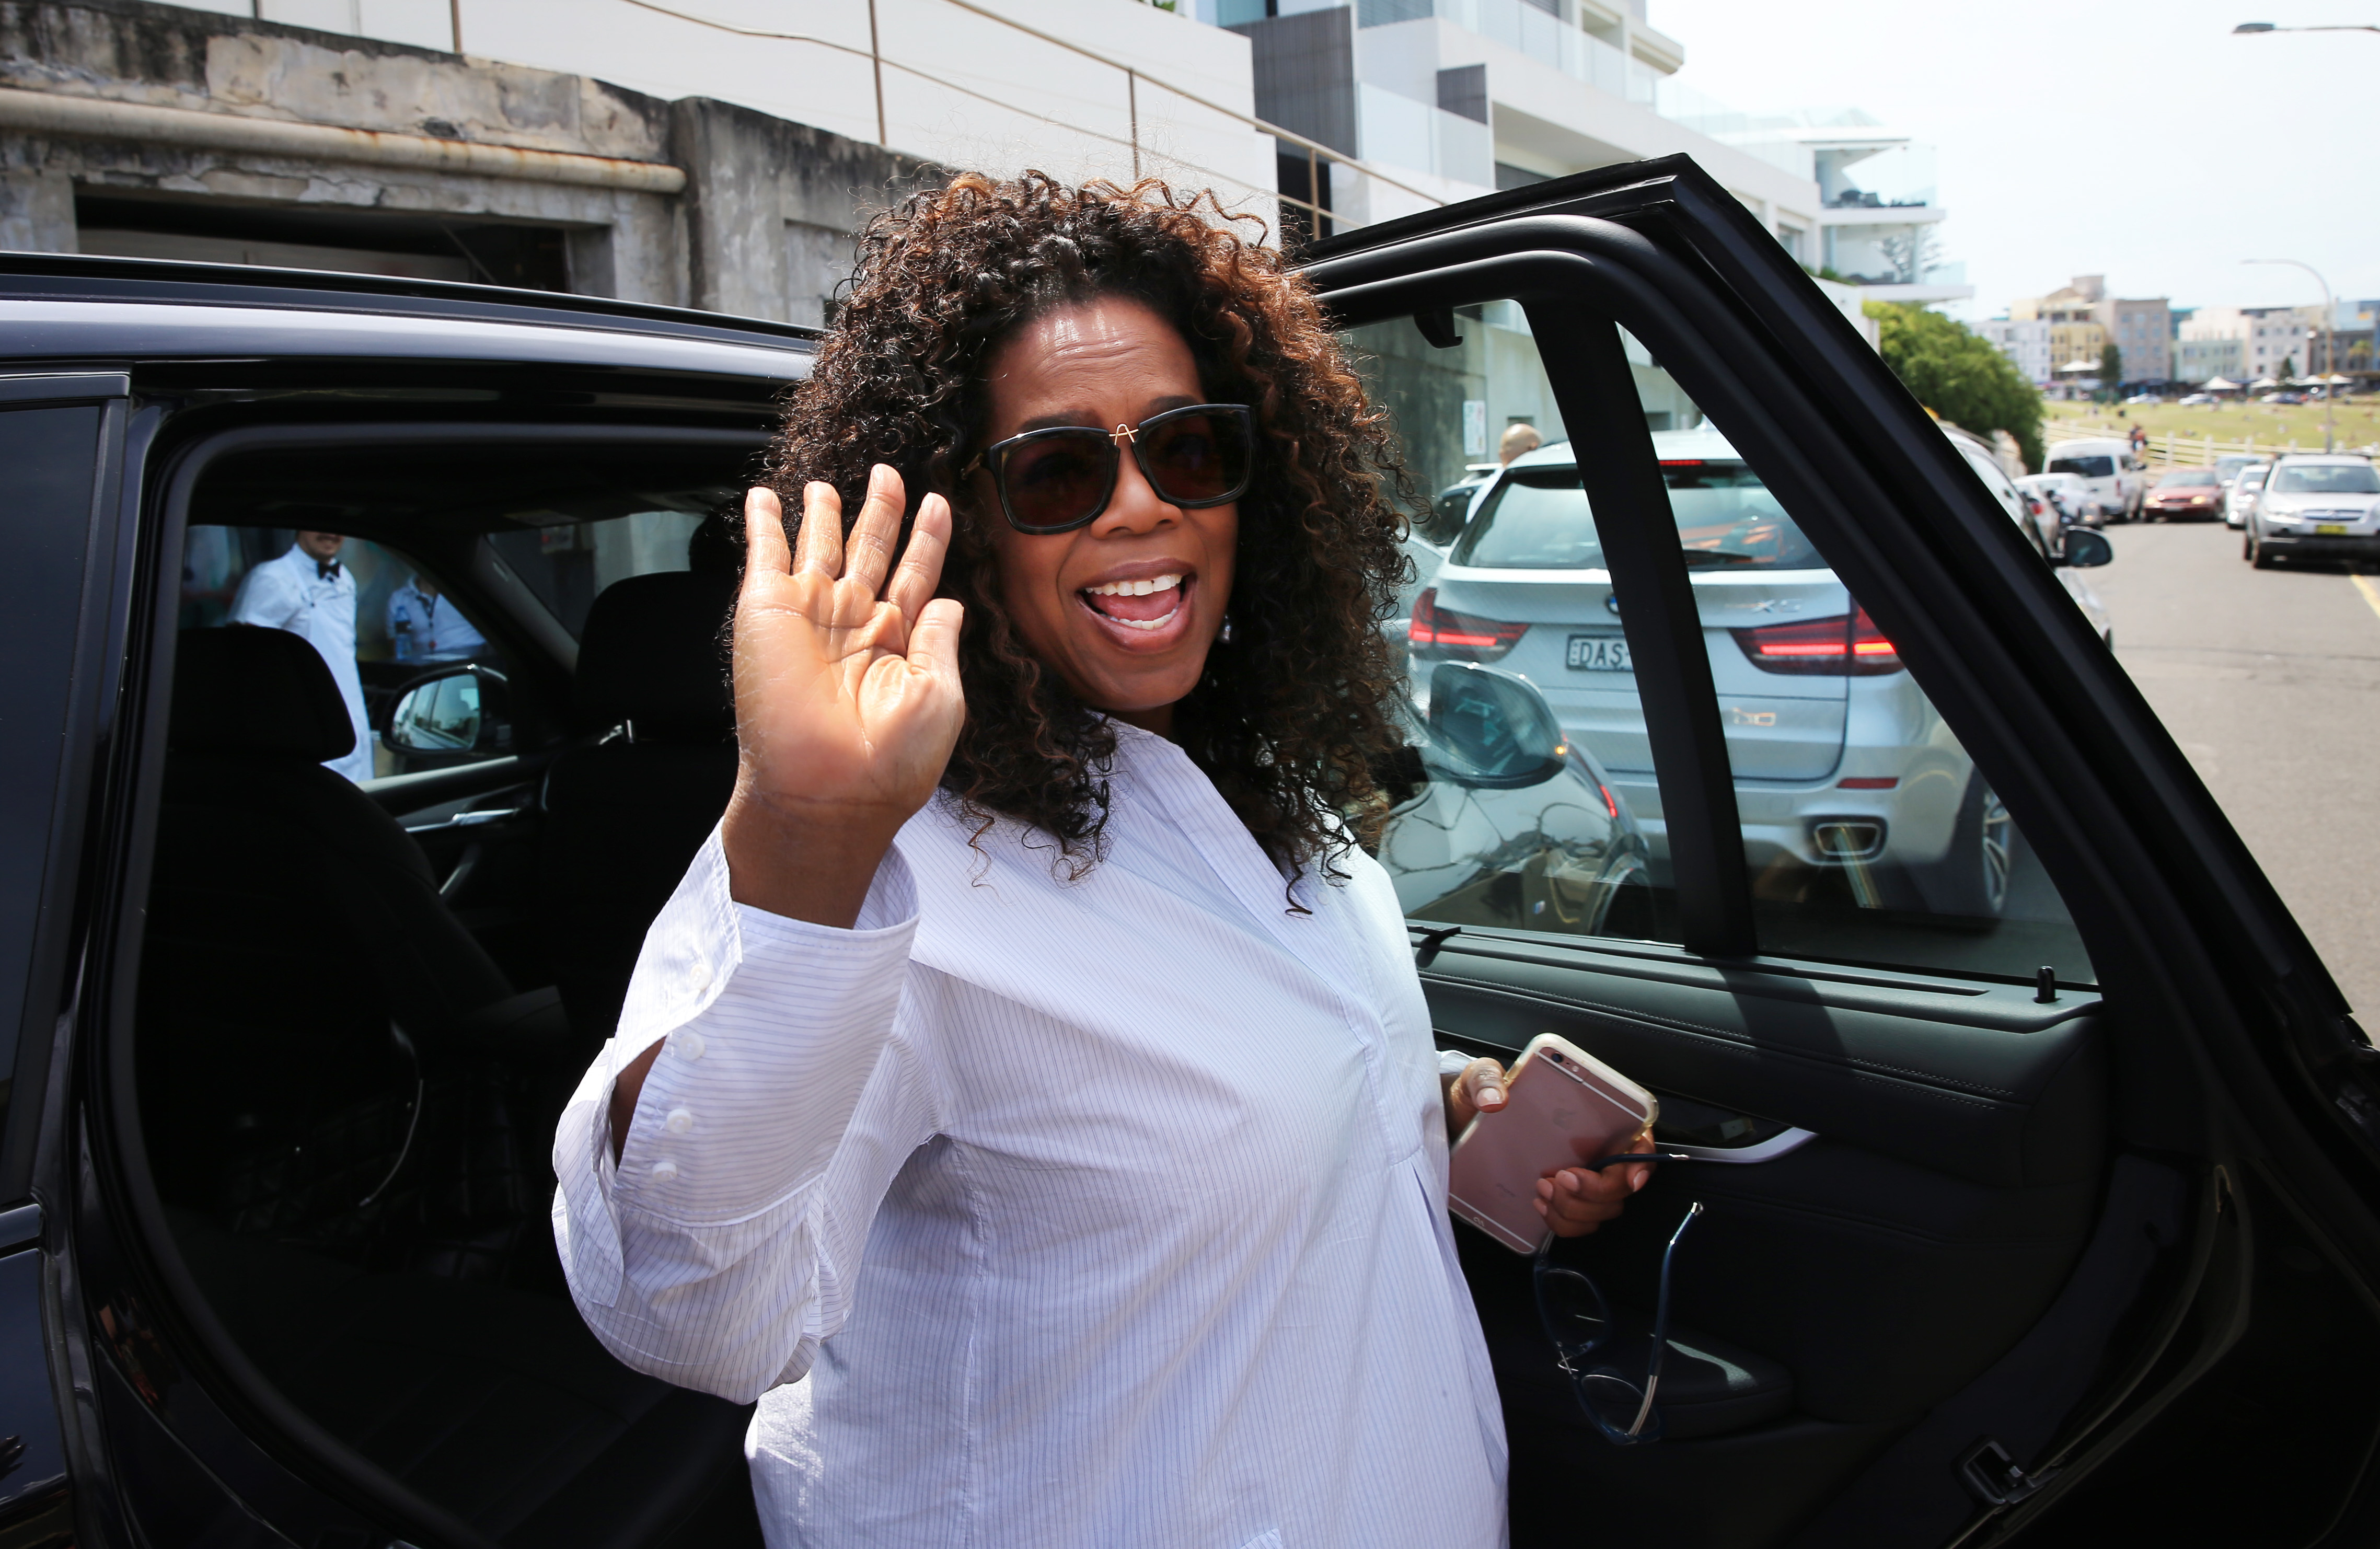 SYDNEY, AUSTRALIA - DECEMBER 13: (EUROPE AND AUSTRALASIA OUT) American talk show host Oprah Winfrey leaves after lunching at Bondi Icebergs restaurant, before driving to Sydney Airport in Sydney, New South Wales.